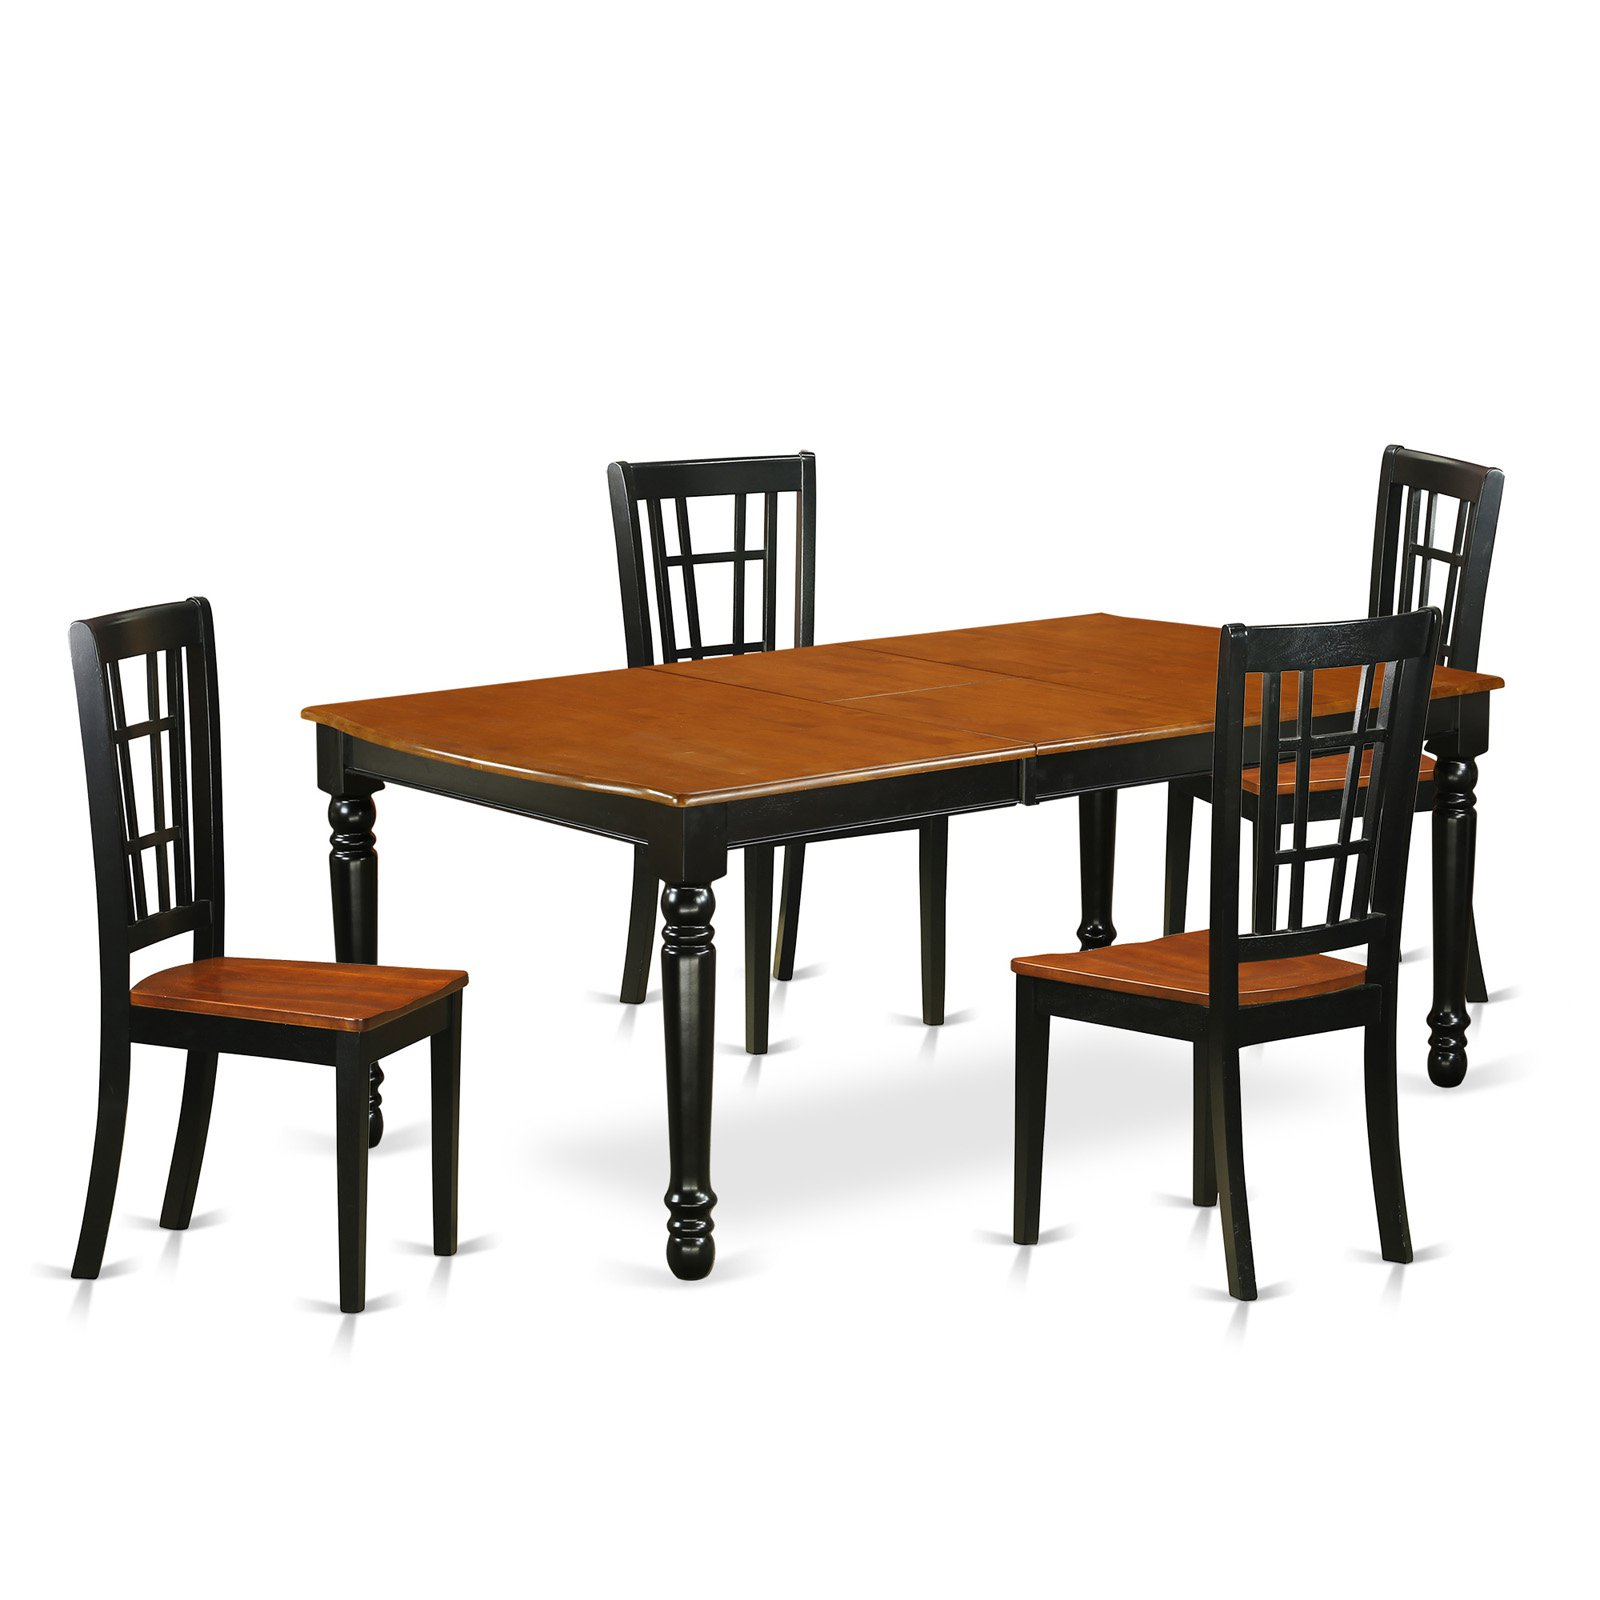 East West Furniture Dover Doni5 Five Piece Extension Dining Table